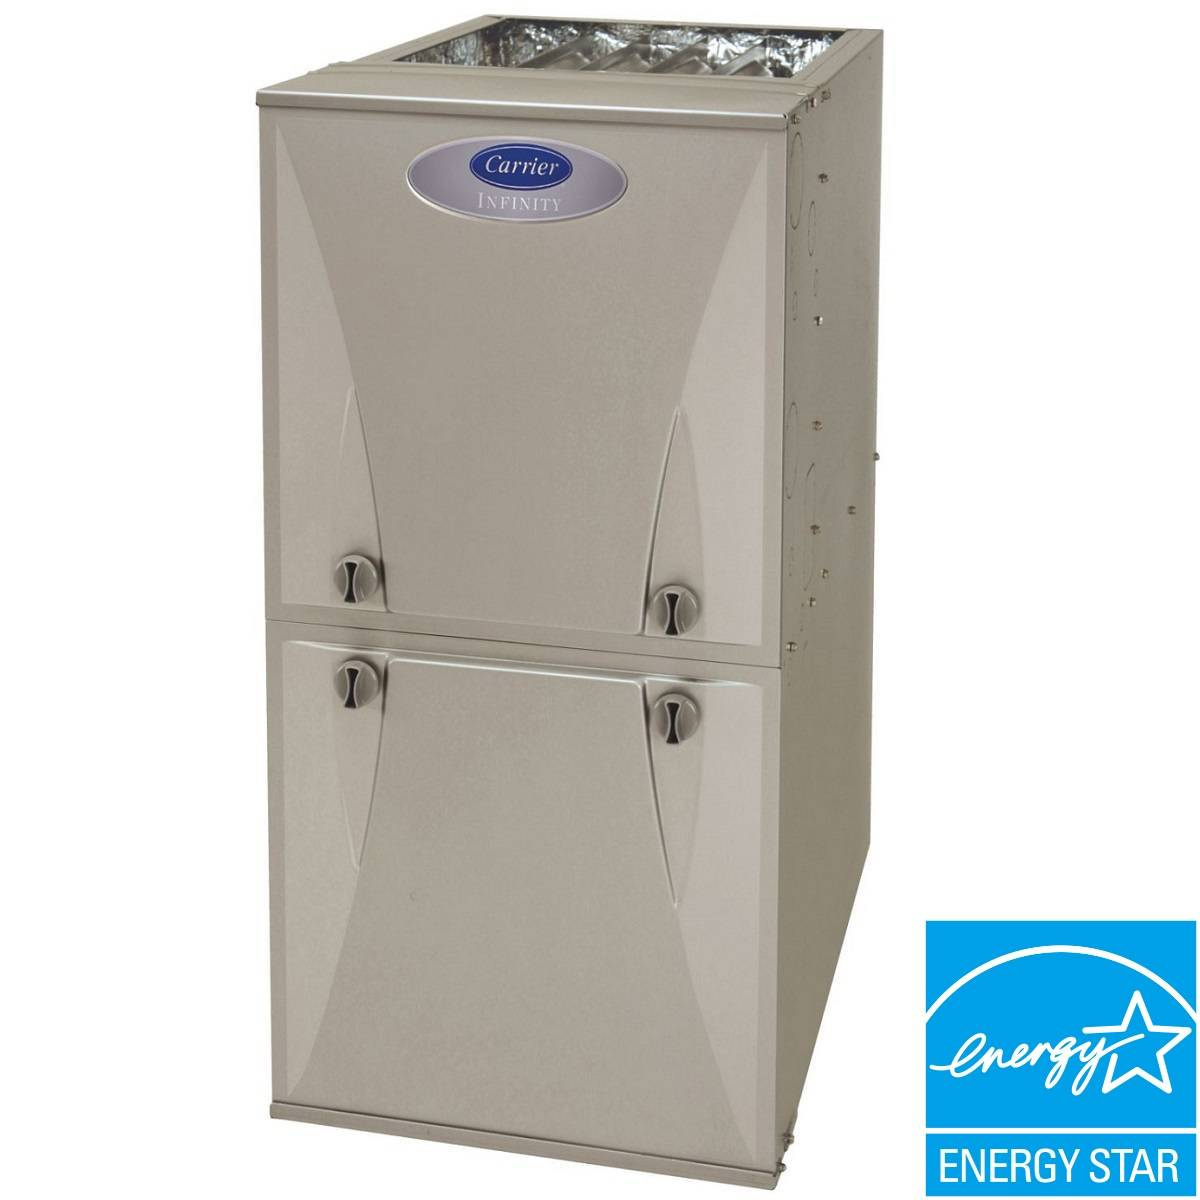 Performance 96 Carrier 59tp6 Gas Furnace 96 7 Afue Two